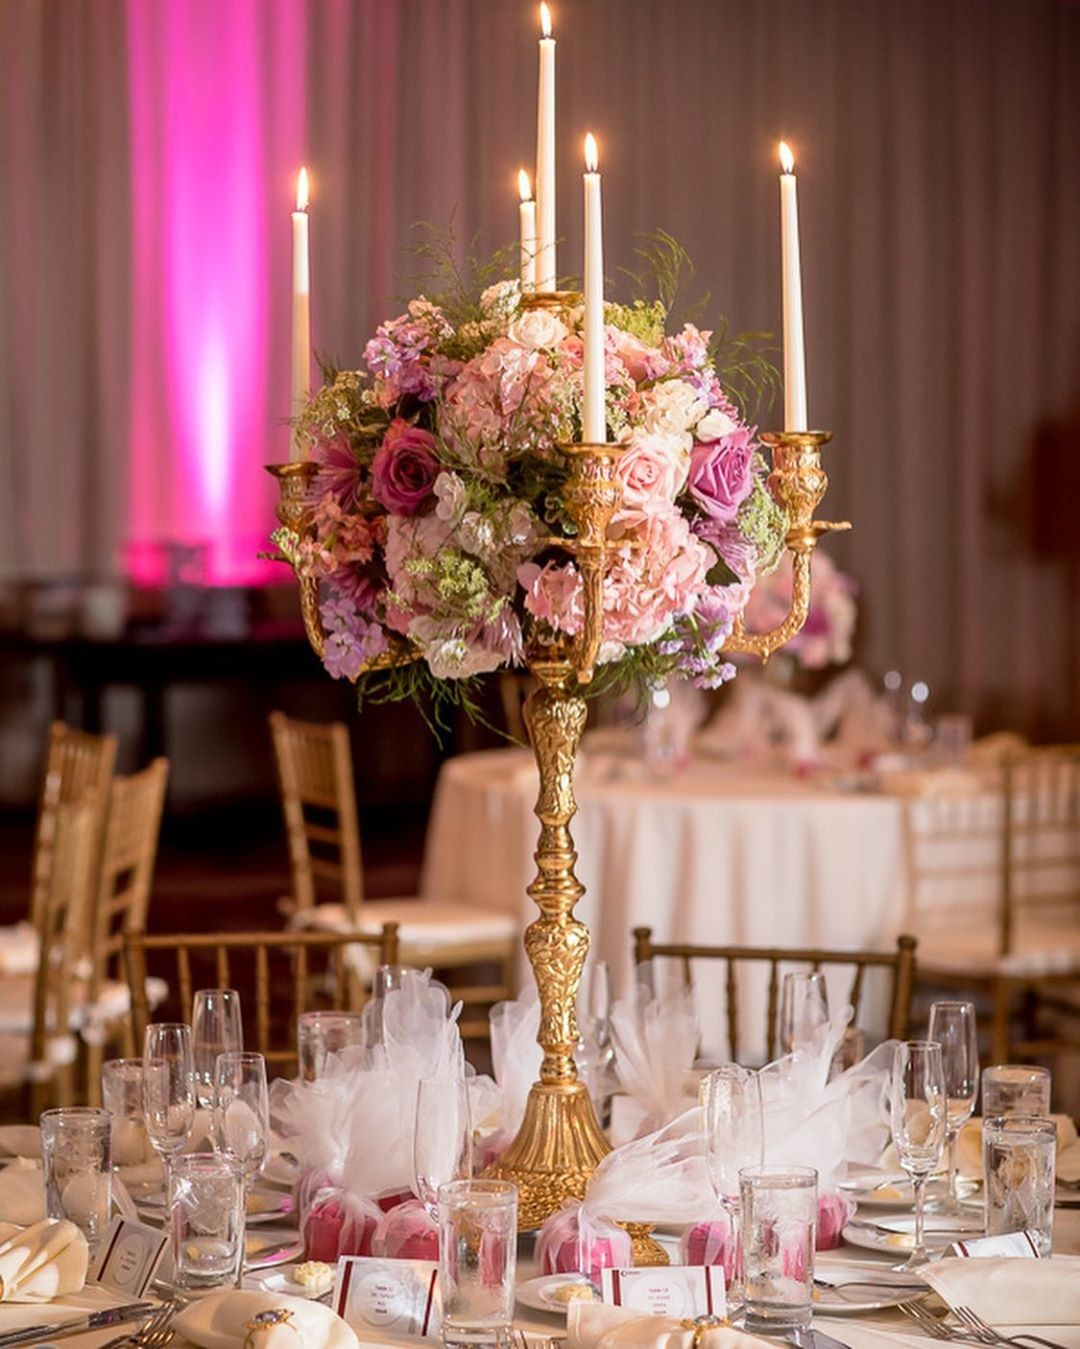 How romantic are these centerpieces!!!